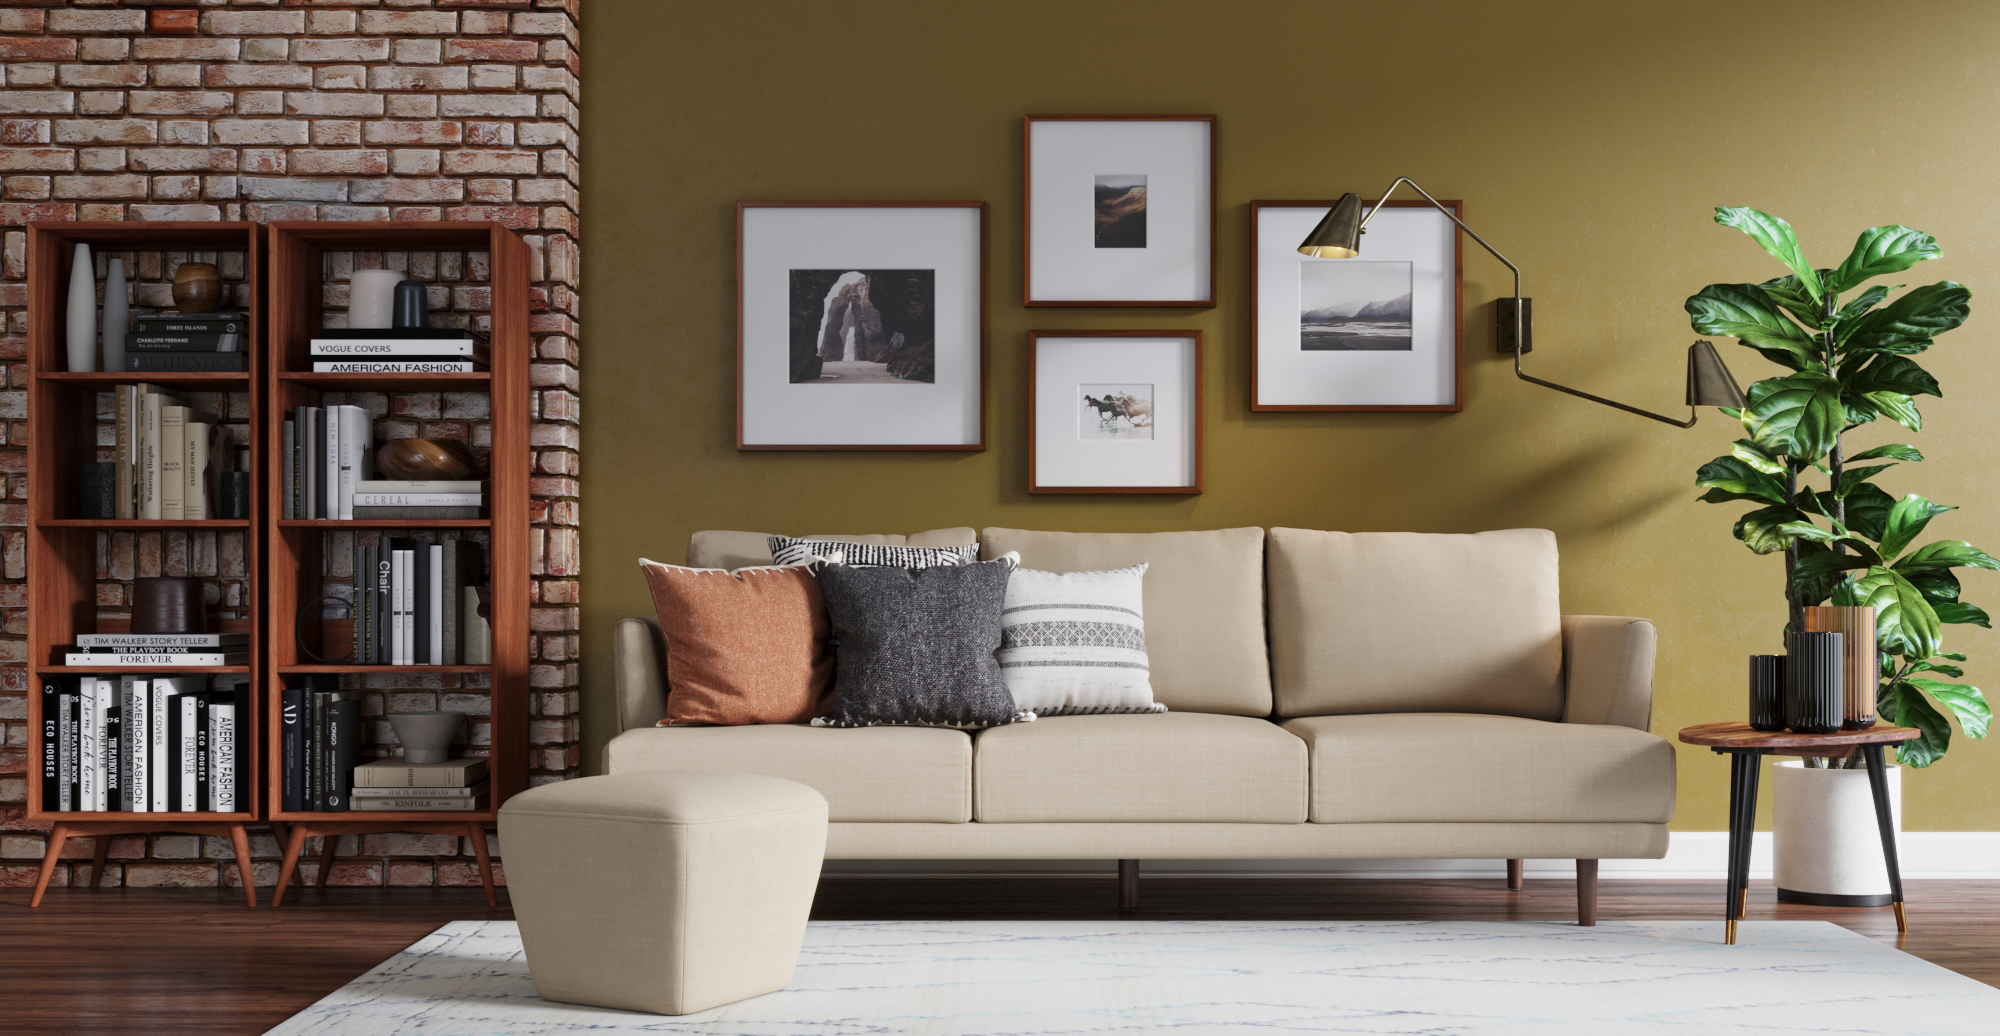 Brosa Christoph 3 Seater Sofa styled in classic traditional living room